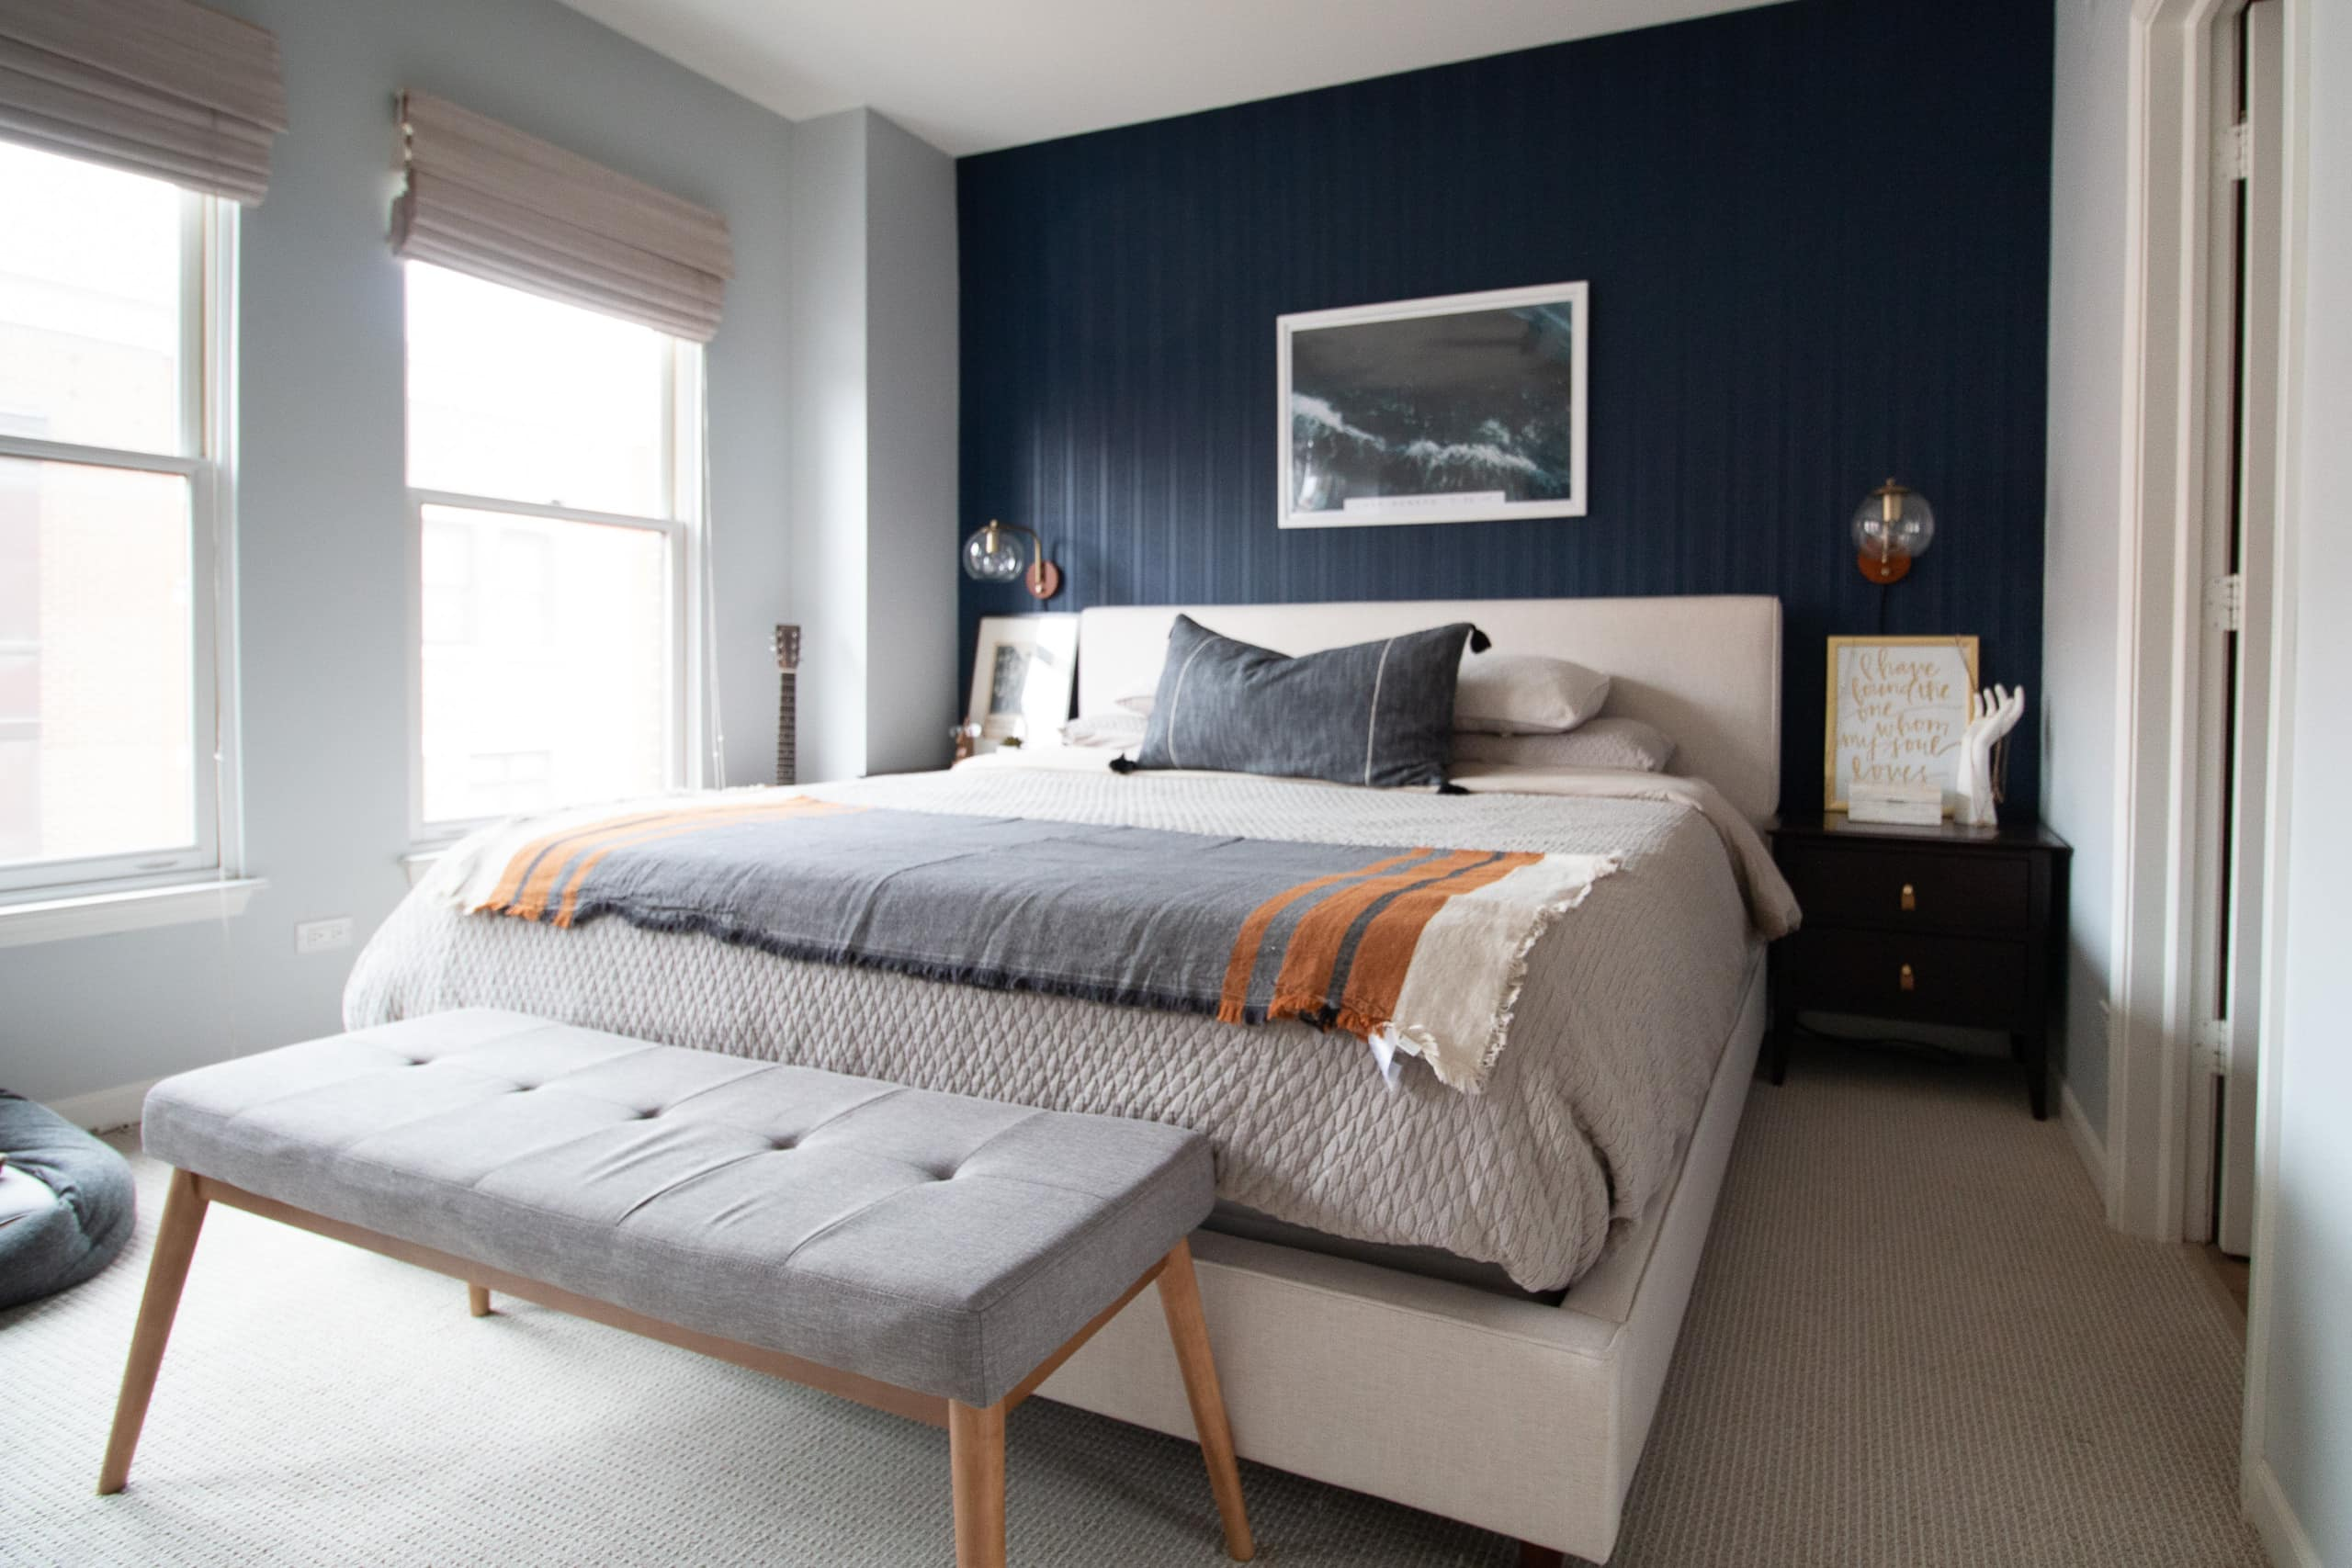 Master bedroom in a Chicago townhome